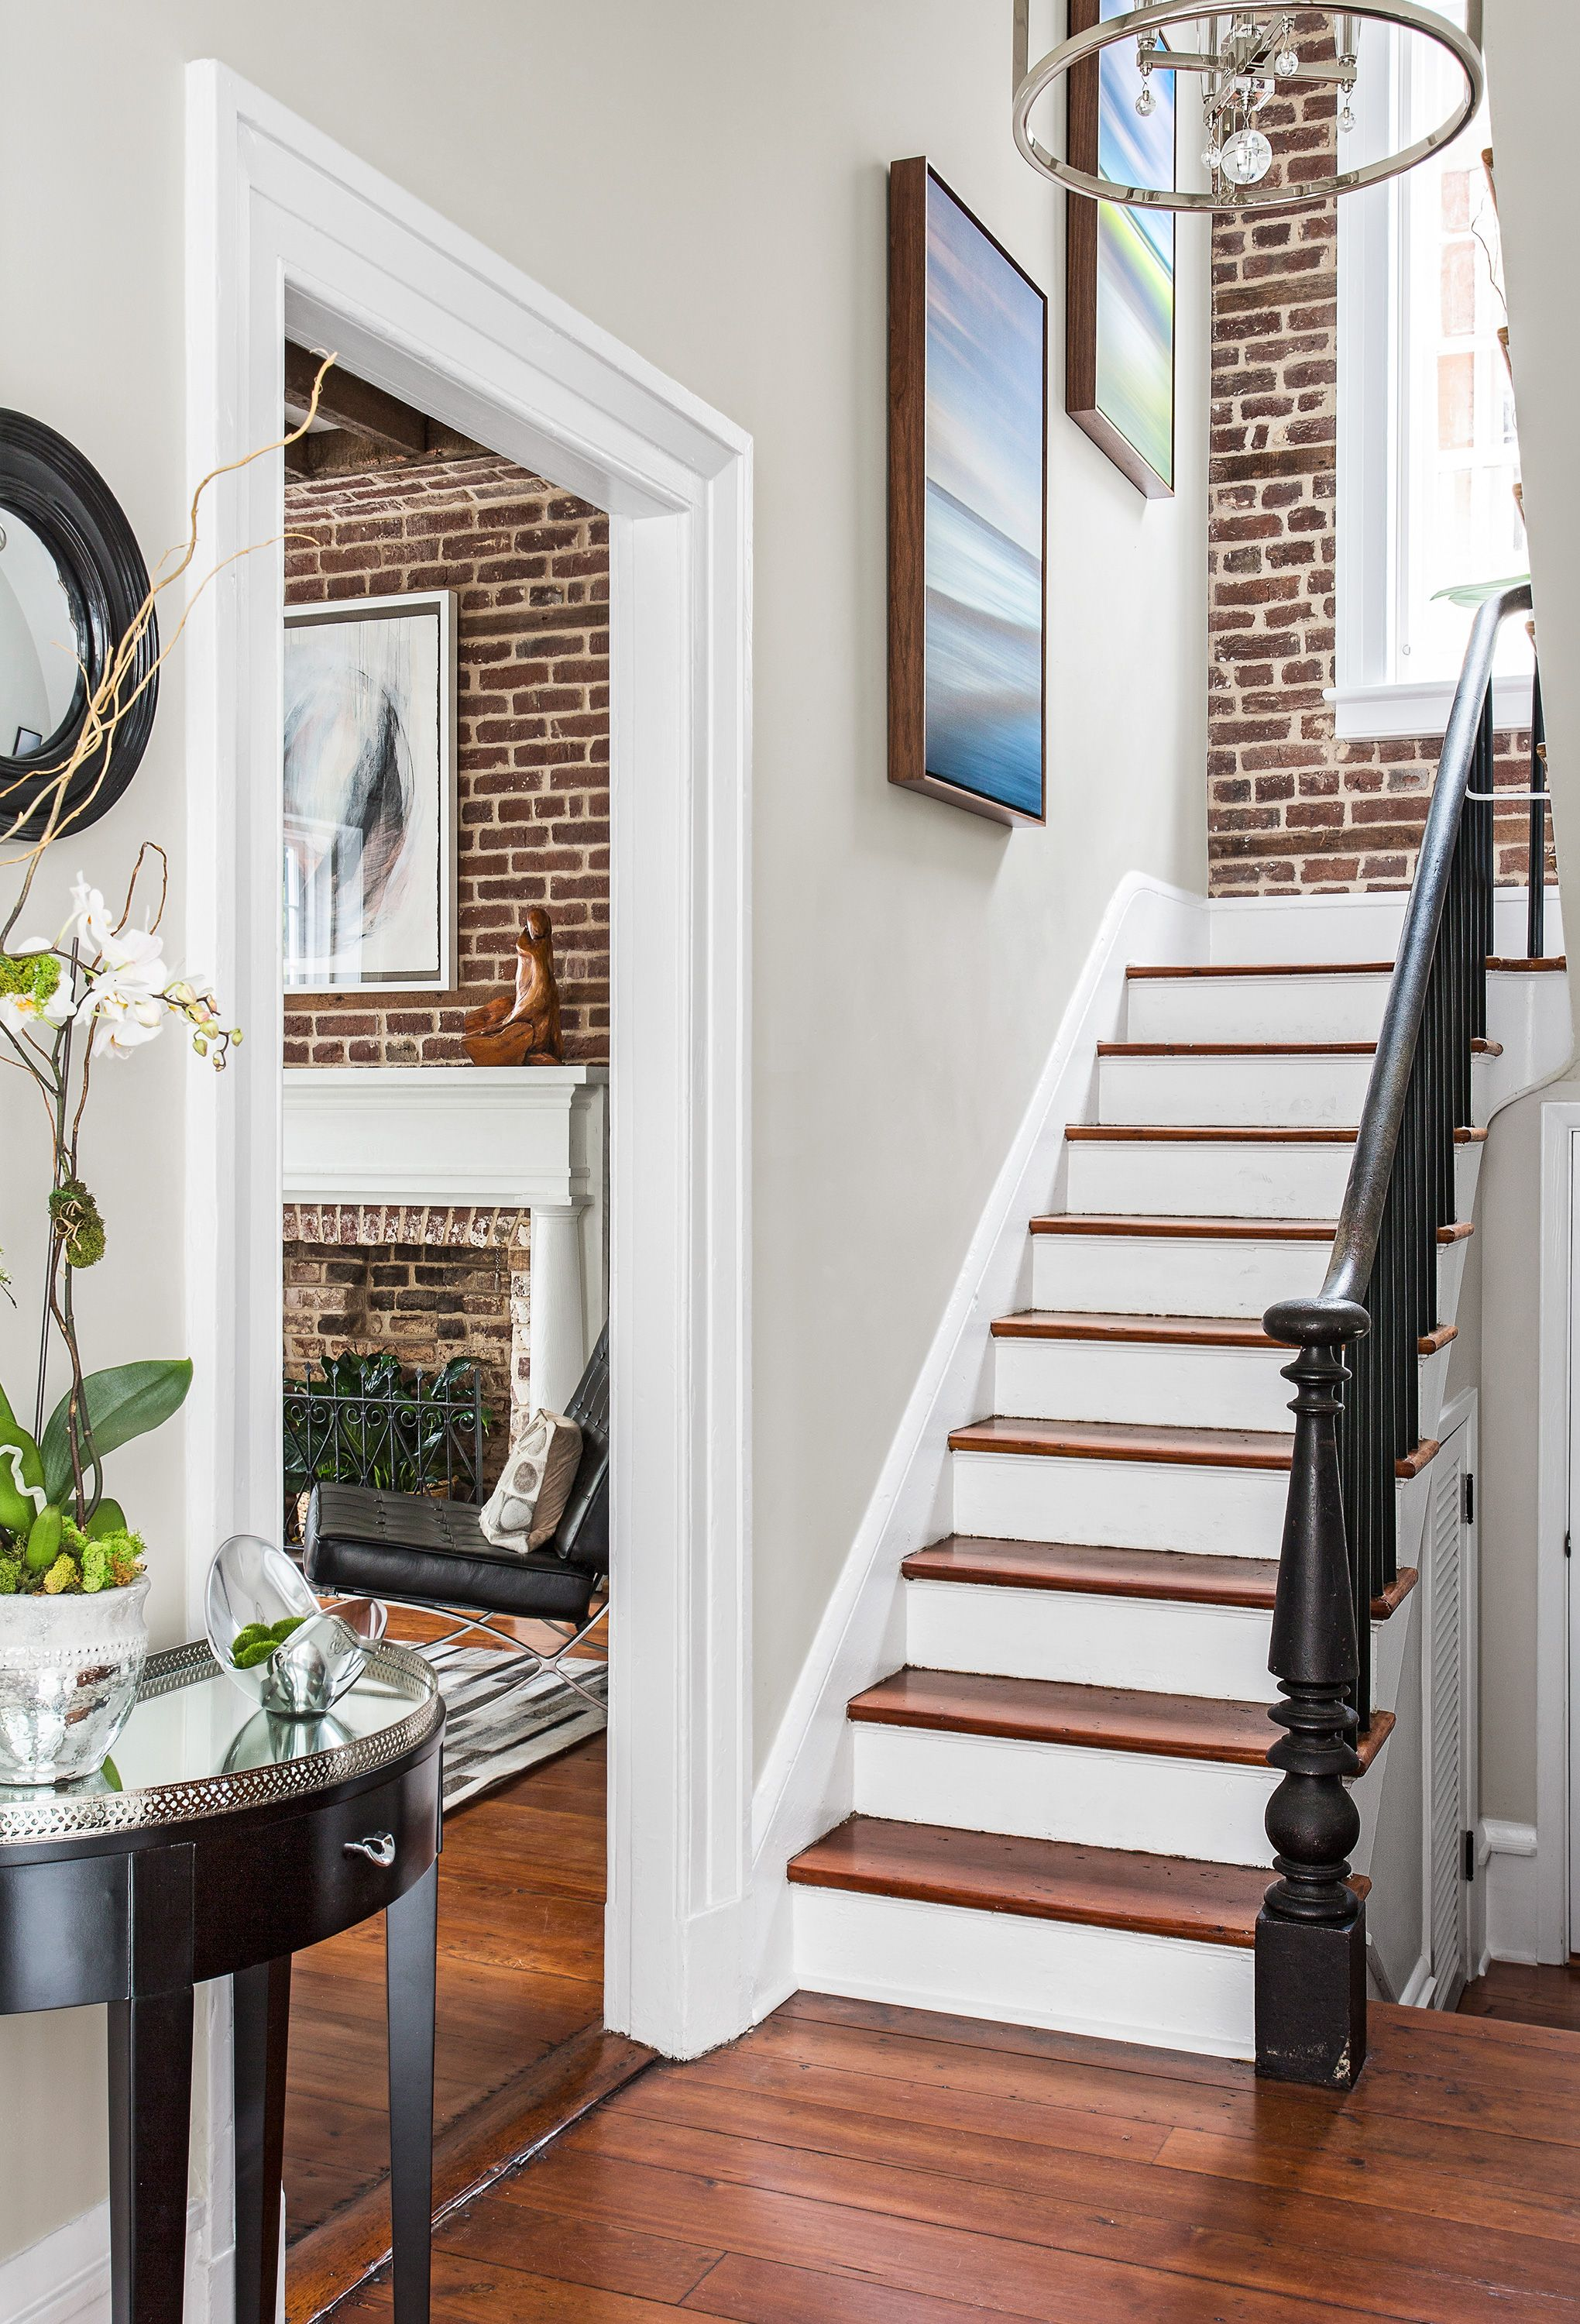 How To Remove Carpet From Stairs This Old House In 2020 Home   Interior Steps Design For Hall   Entrance   Lobby Design   Realistic   Beautiful   Straight